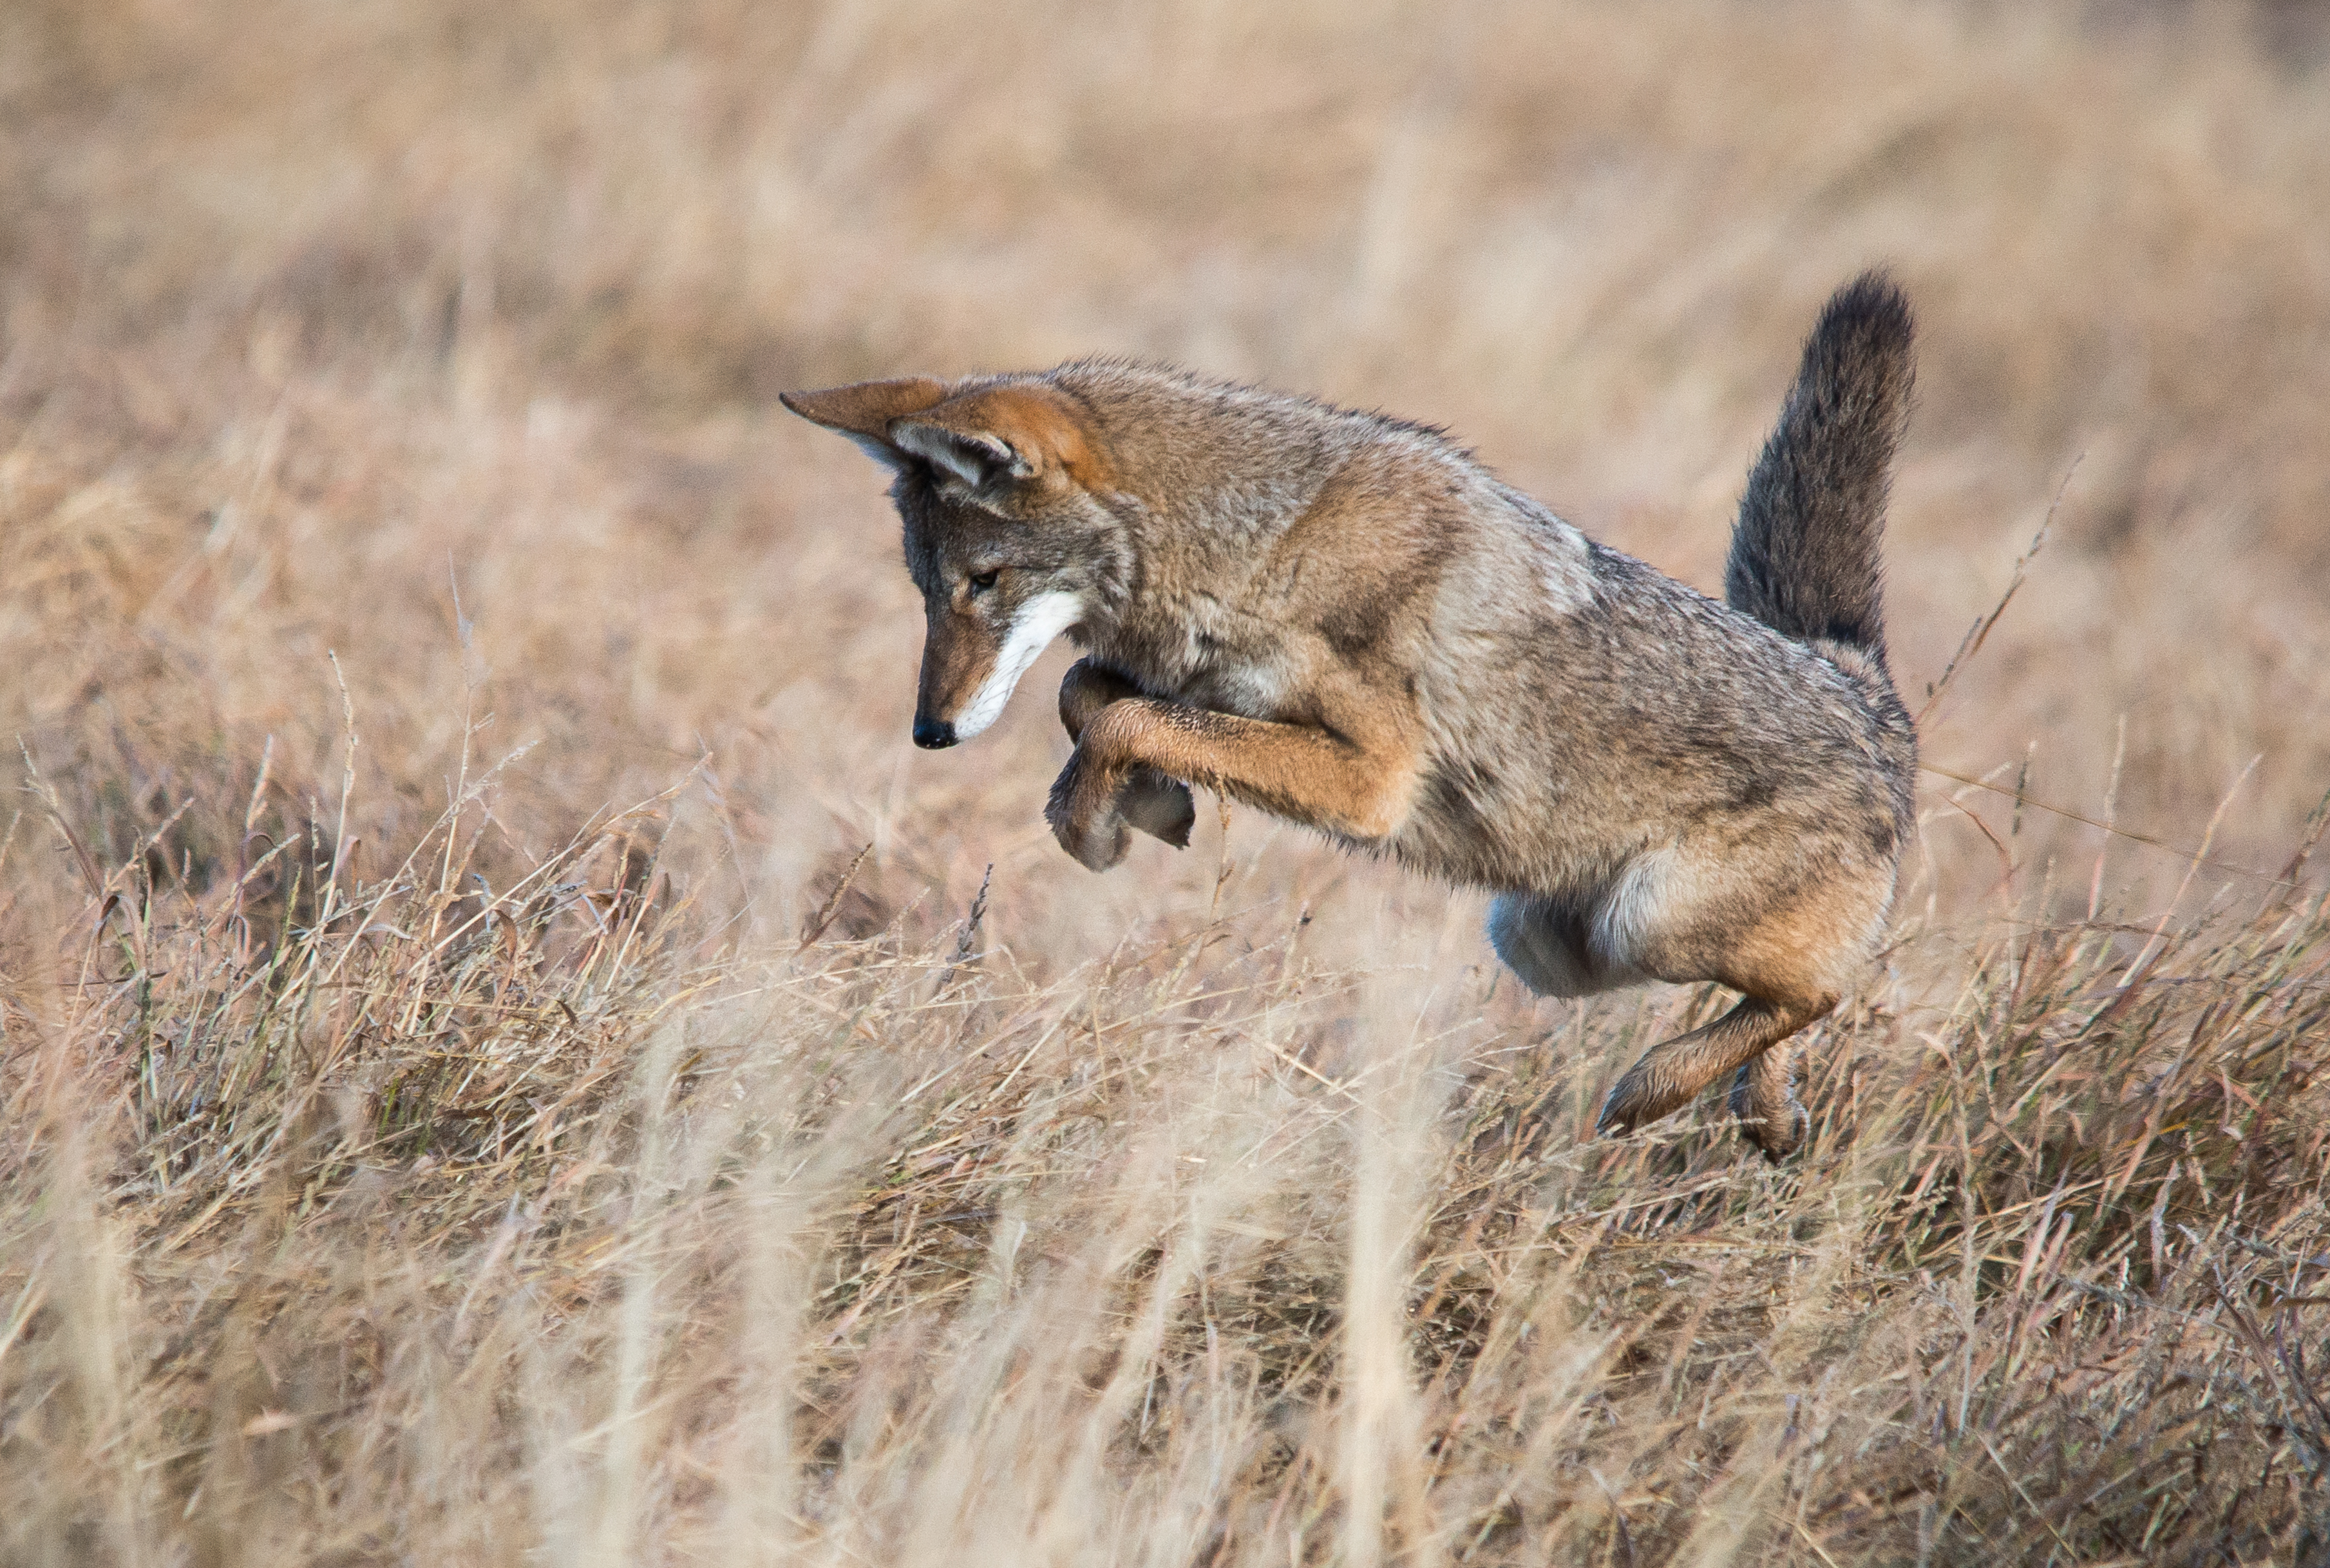 Coyote hunting for rodents - Coyotes help to keep rodent populations in check